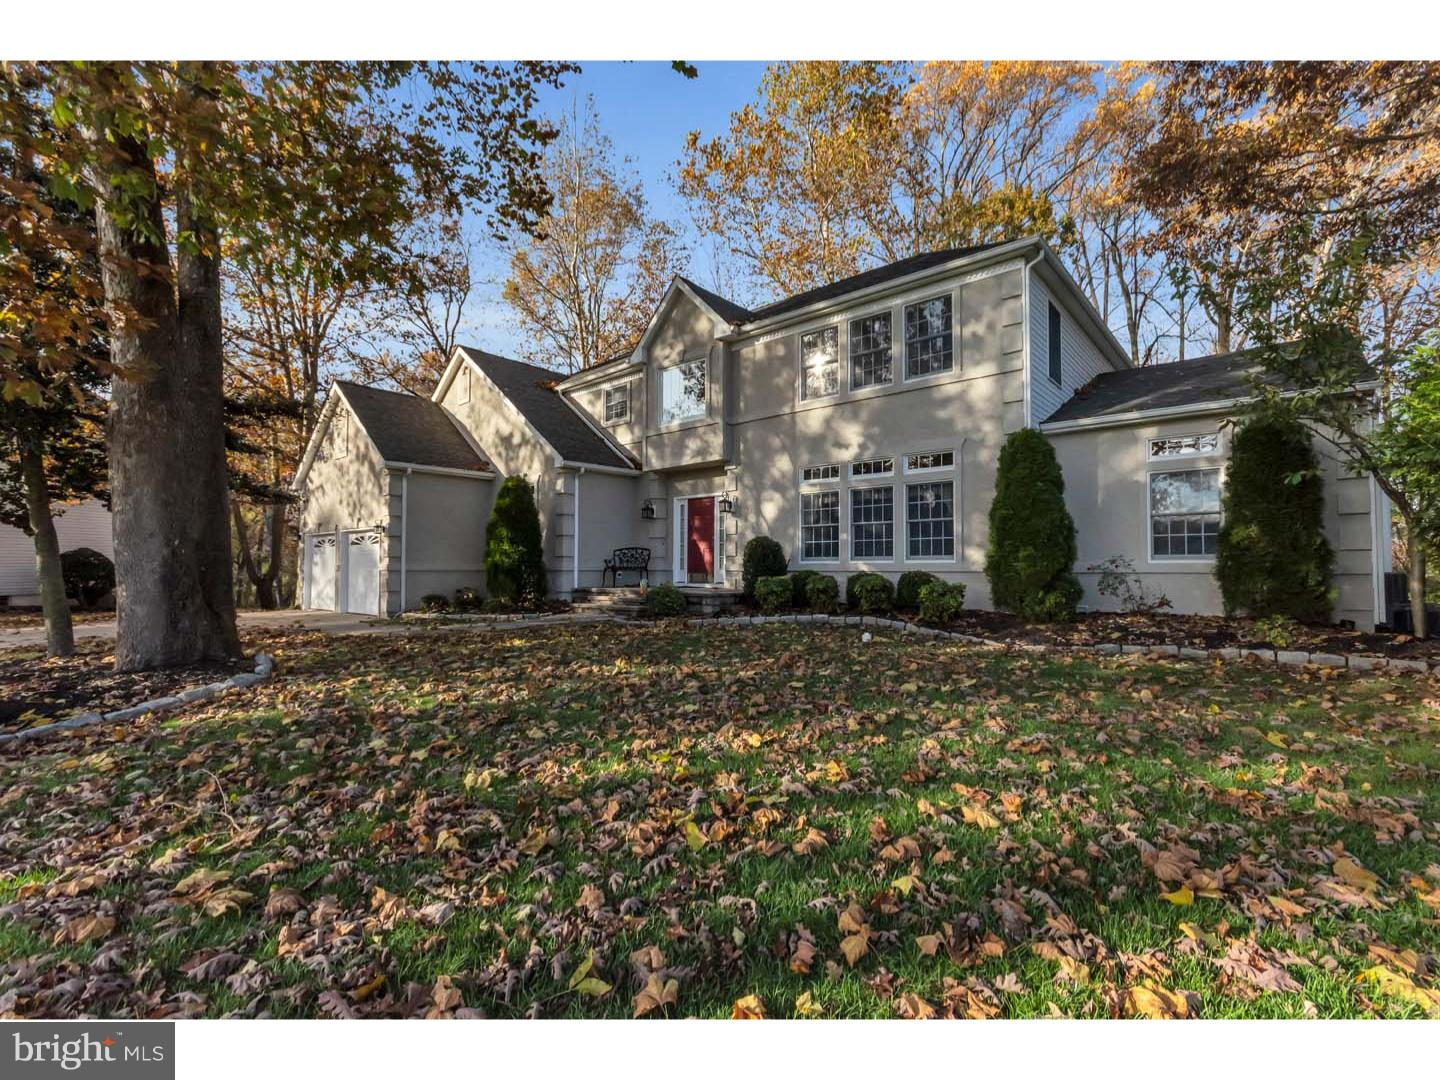 9 ARMITAGE COURT, SEWELL, NJ 08080